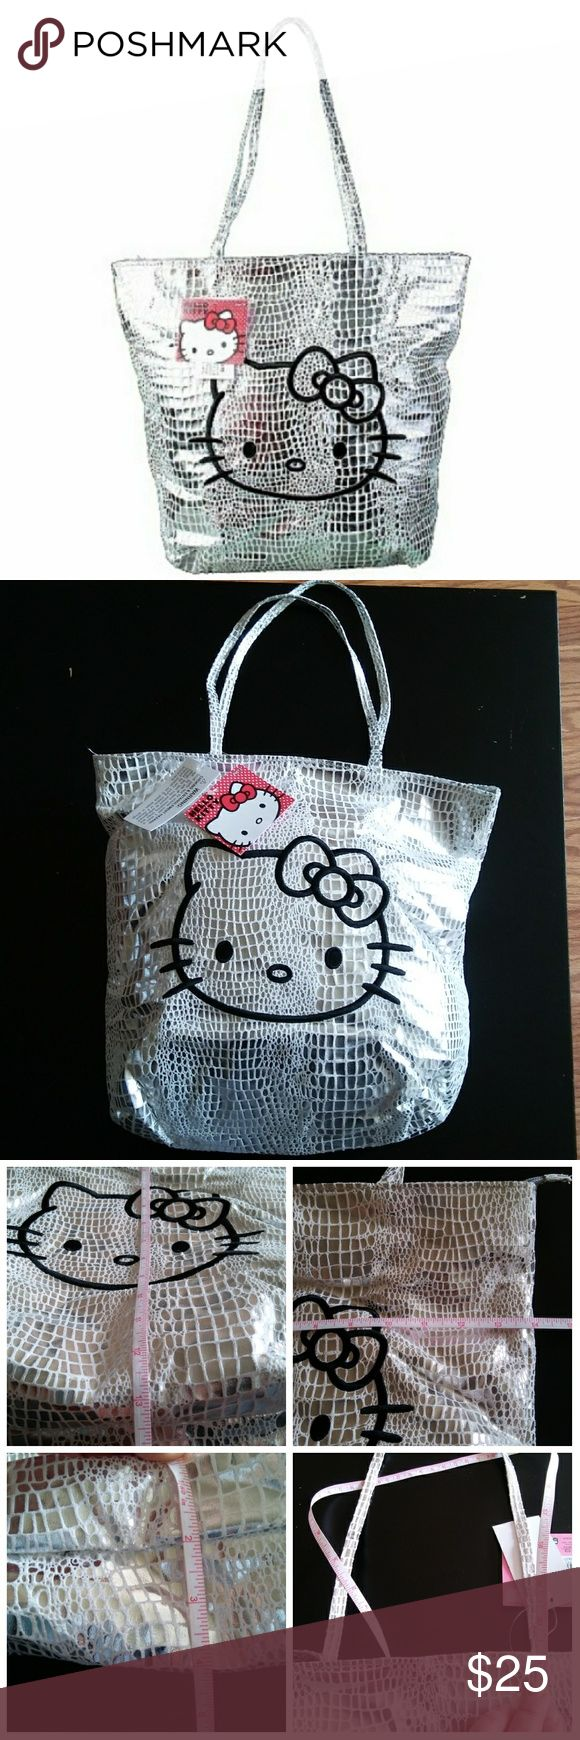 Hello kitty metallic silver tote New with tag. Its a metalkic silver color medium size tote bag. No trades or Pp thanks Hello Kitty Bags Totes